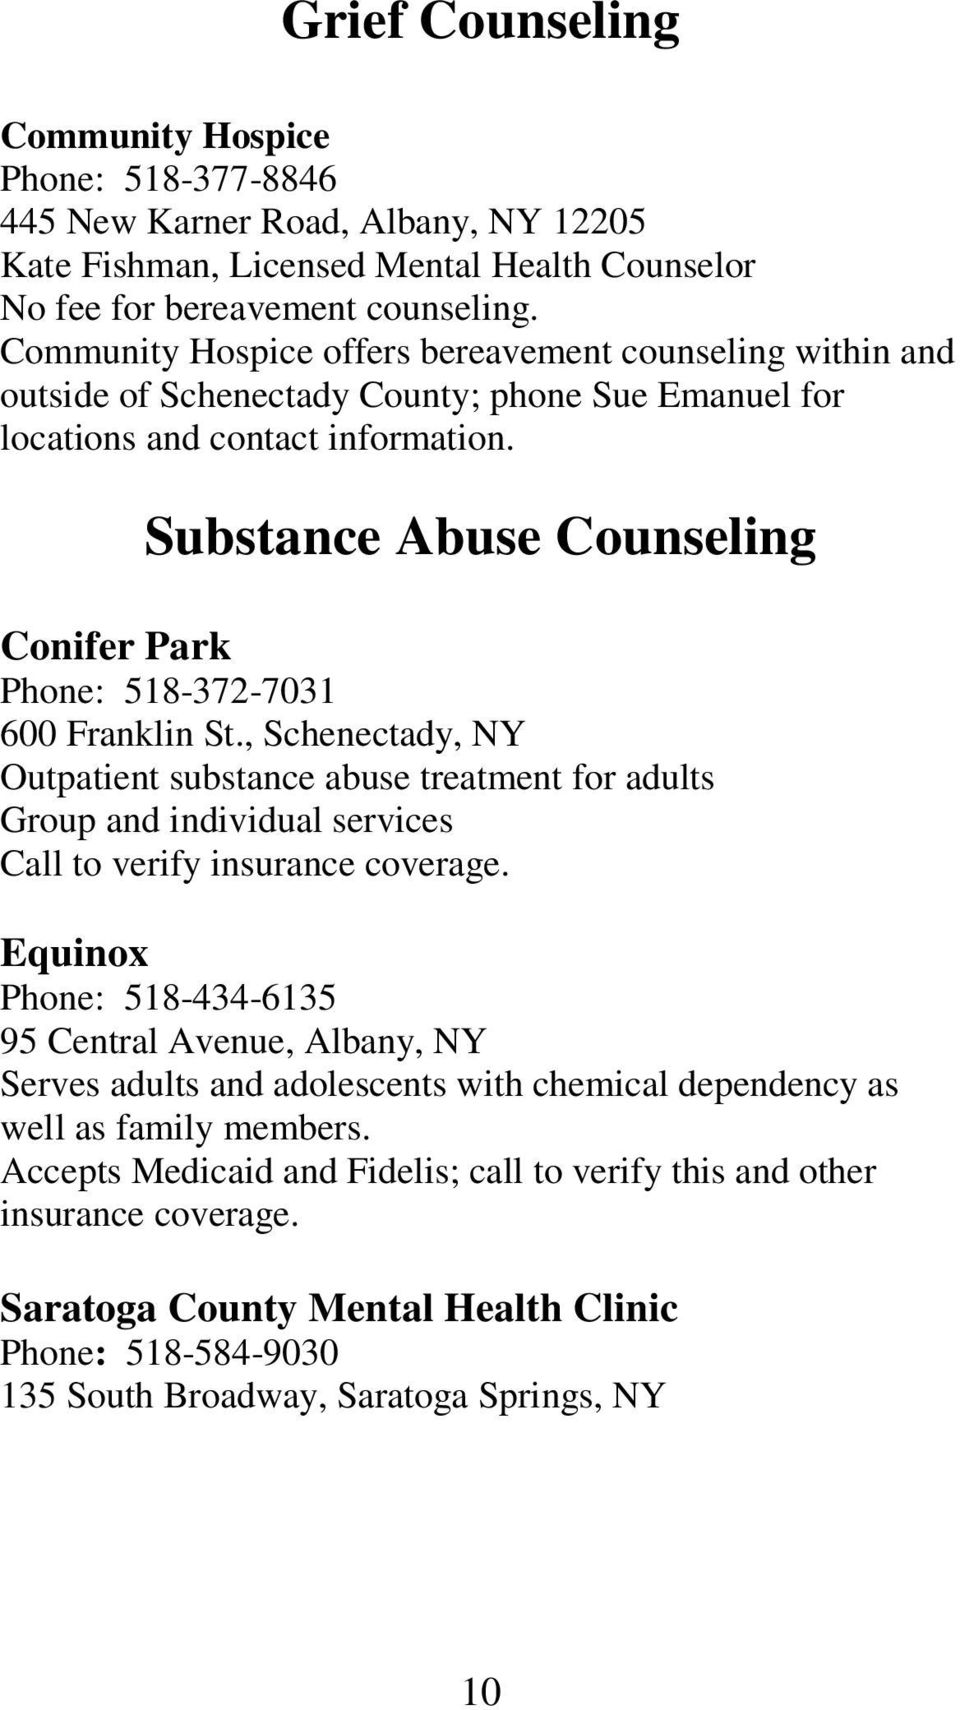 Substance Abuse Counseling Conifer Park Phone: 518-372-7031 600 Franklin St.